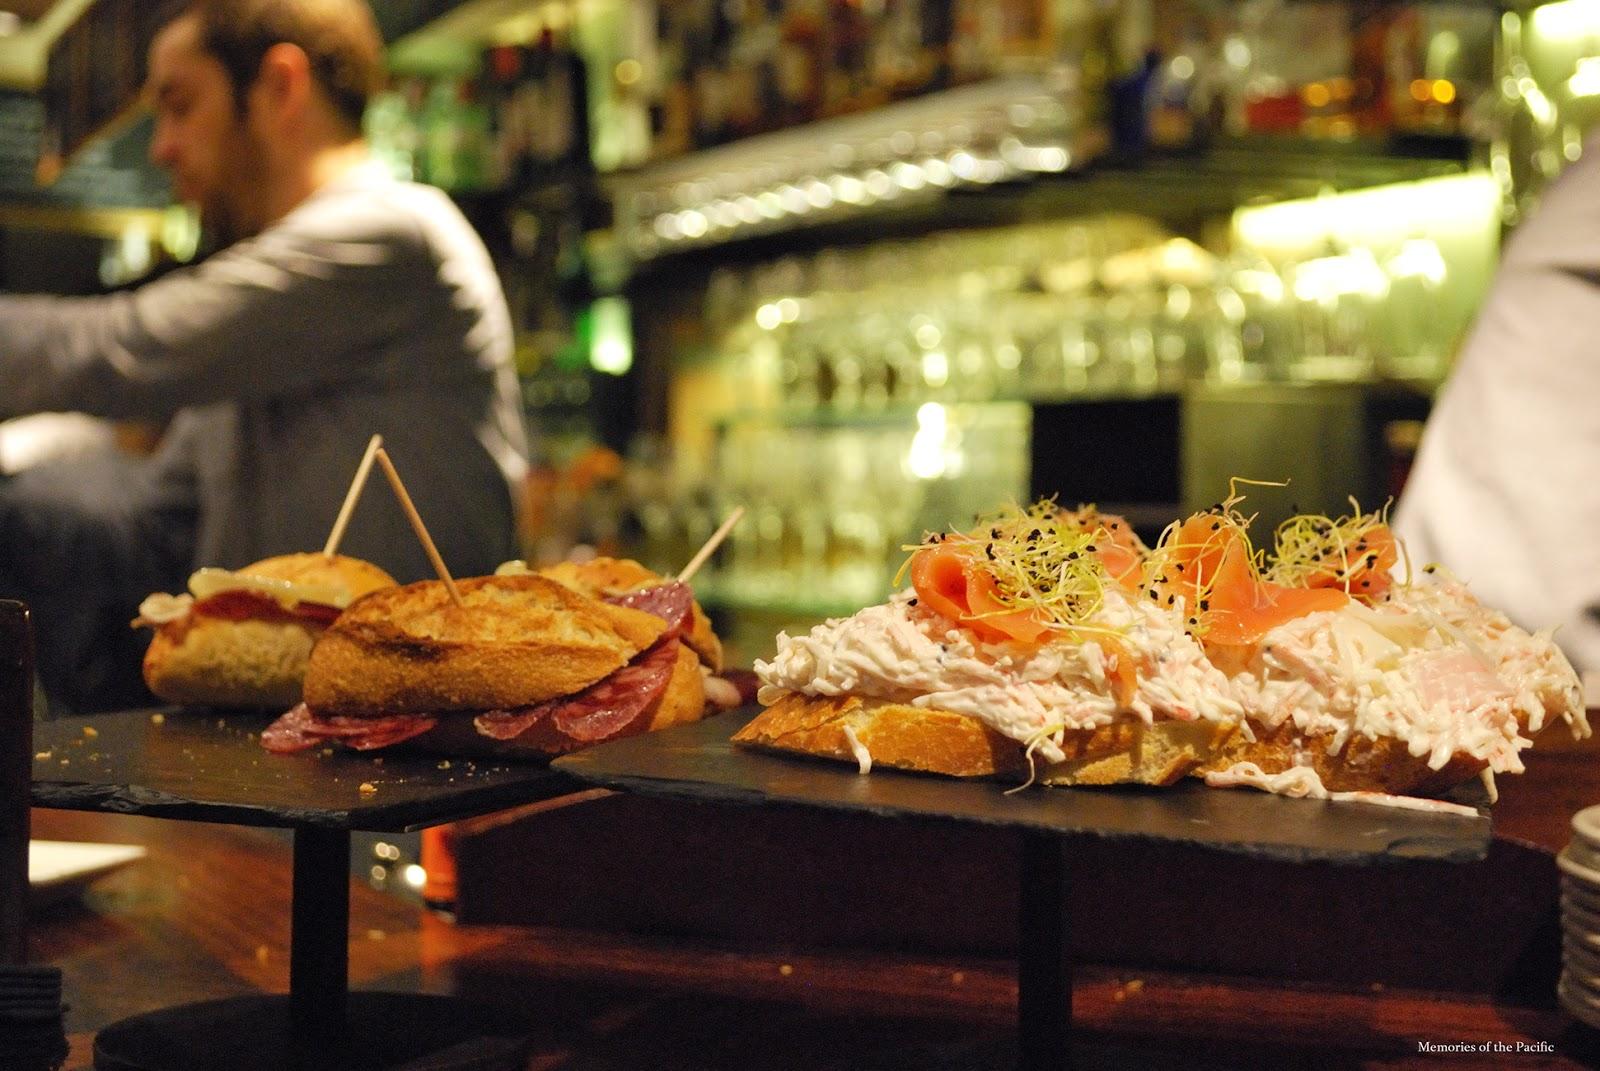 Atari Gastroteka pintxos san sebastian